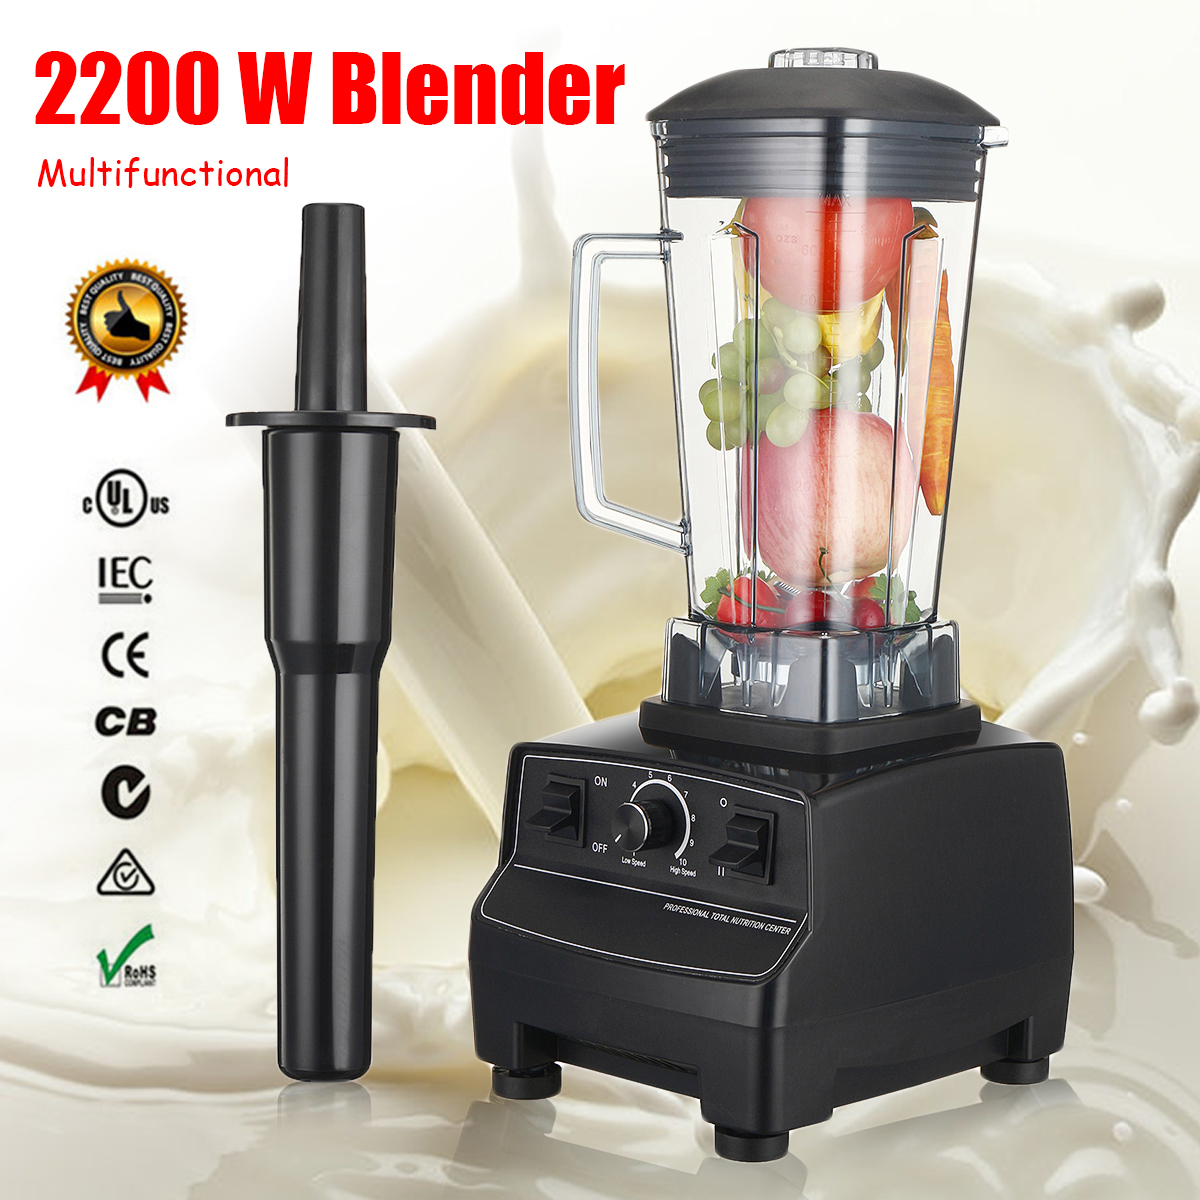 2L 3-HP 110V US Blenders 2200W 6 Blades 45000-peak 10 Adjustable Speed Hardened Stainless Steel Blades Easy Metal Connect System стоимость